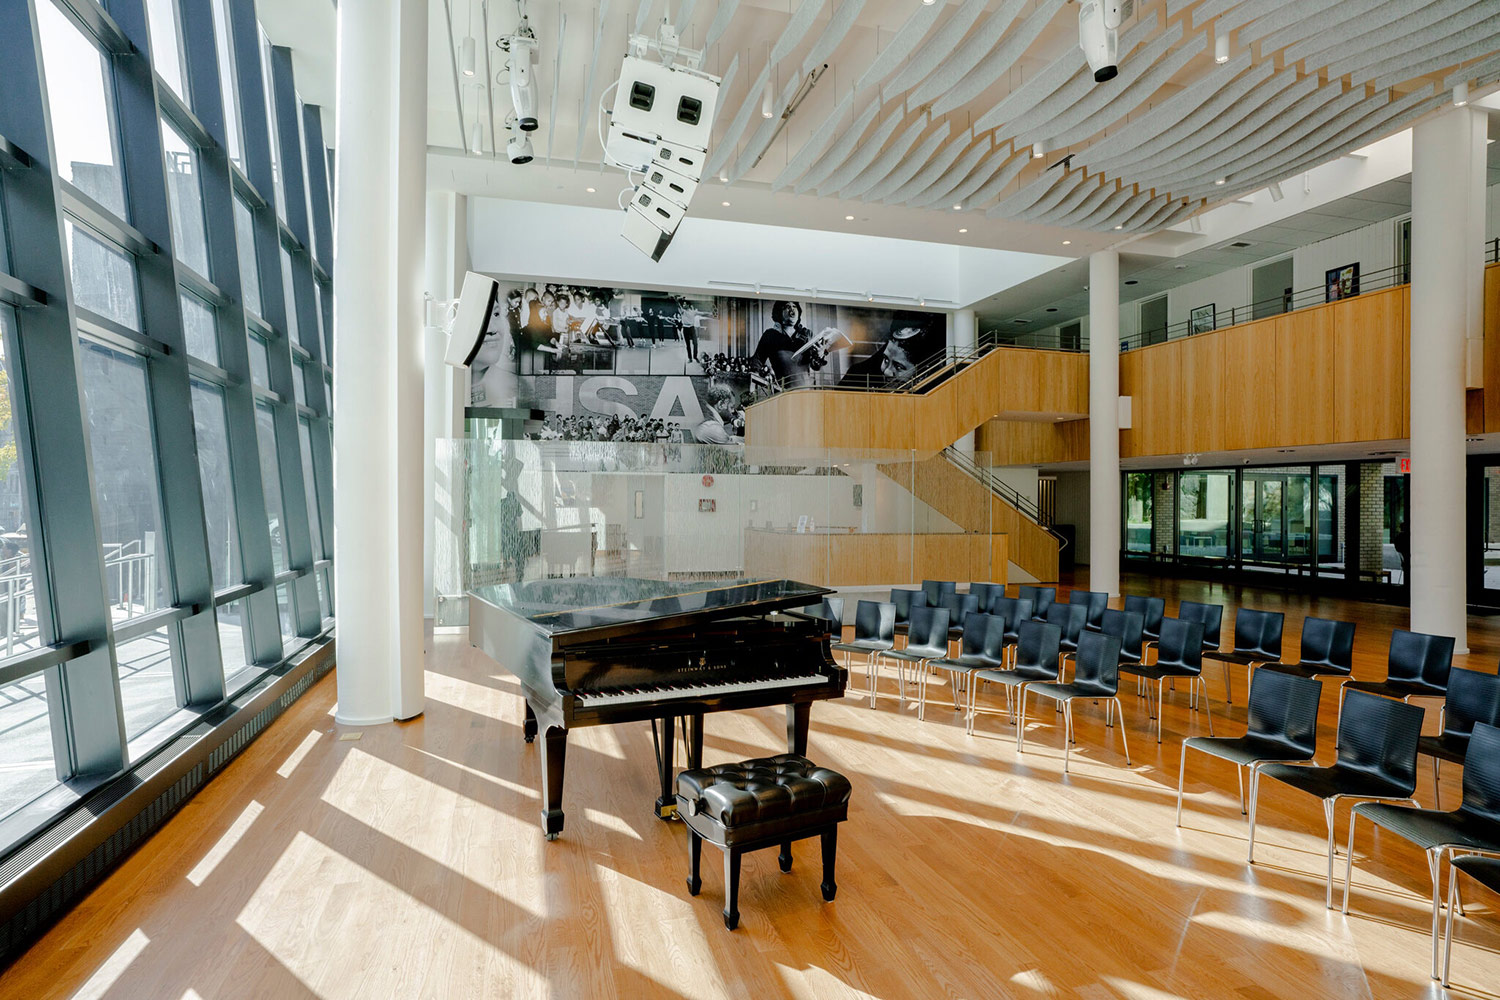 Harlem School of Arts Renaissance Project, Dorothy Maynor Hall. Herb Alpert called WSDG for acoustics.